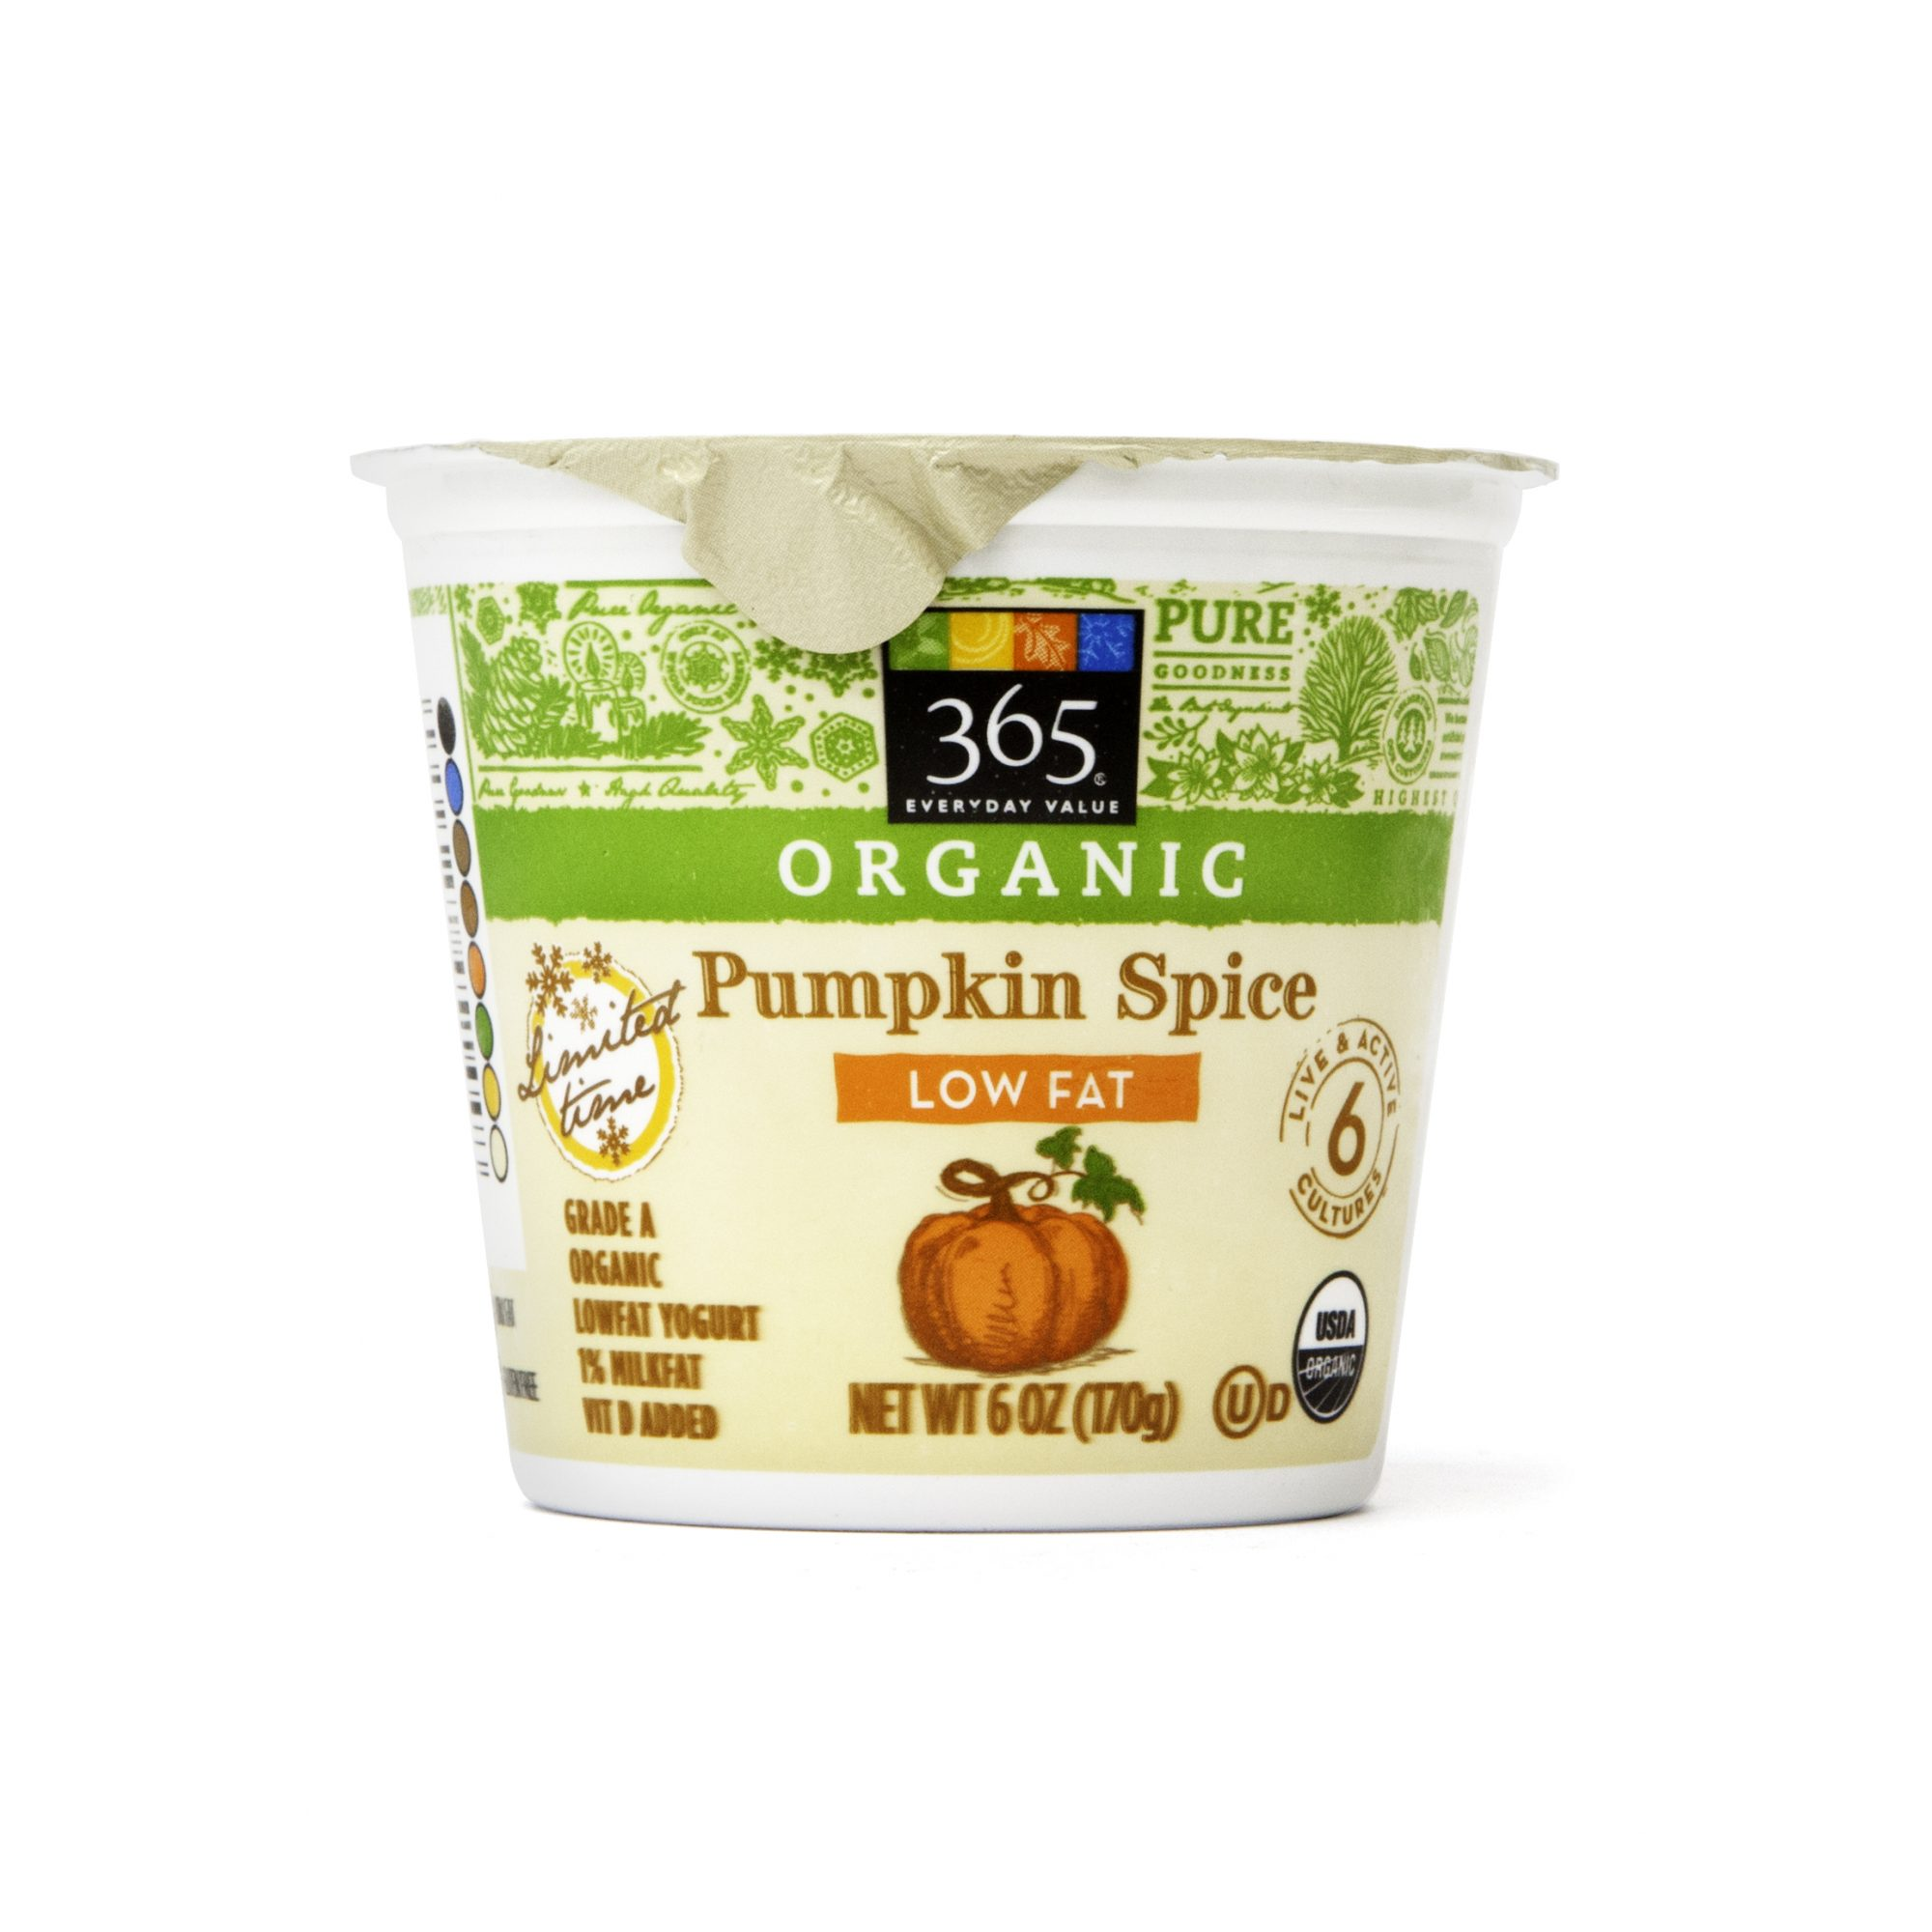 ORGANIC PUMPKIN SPICE LOW FAT YOGURT